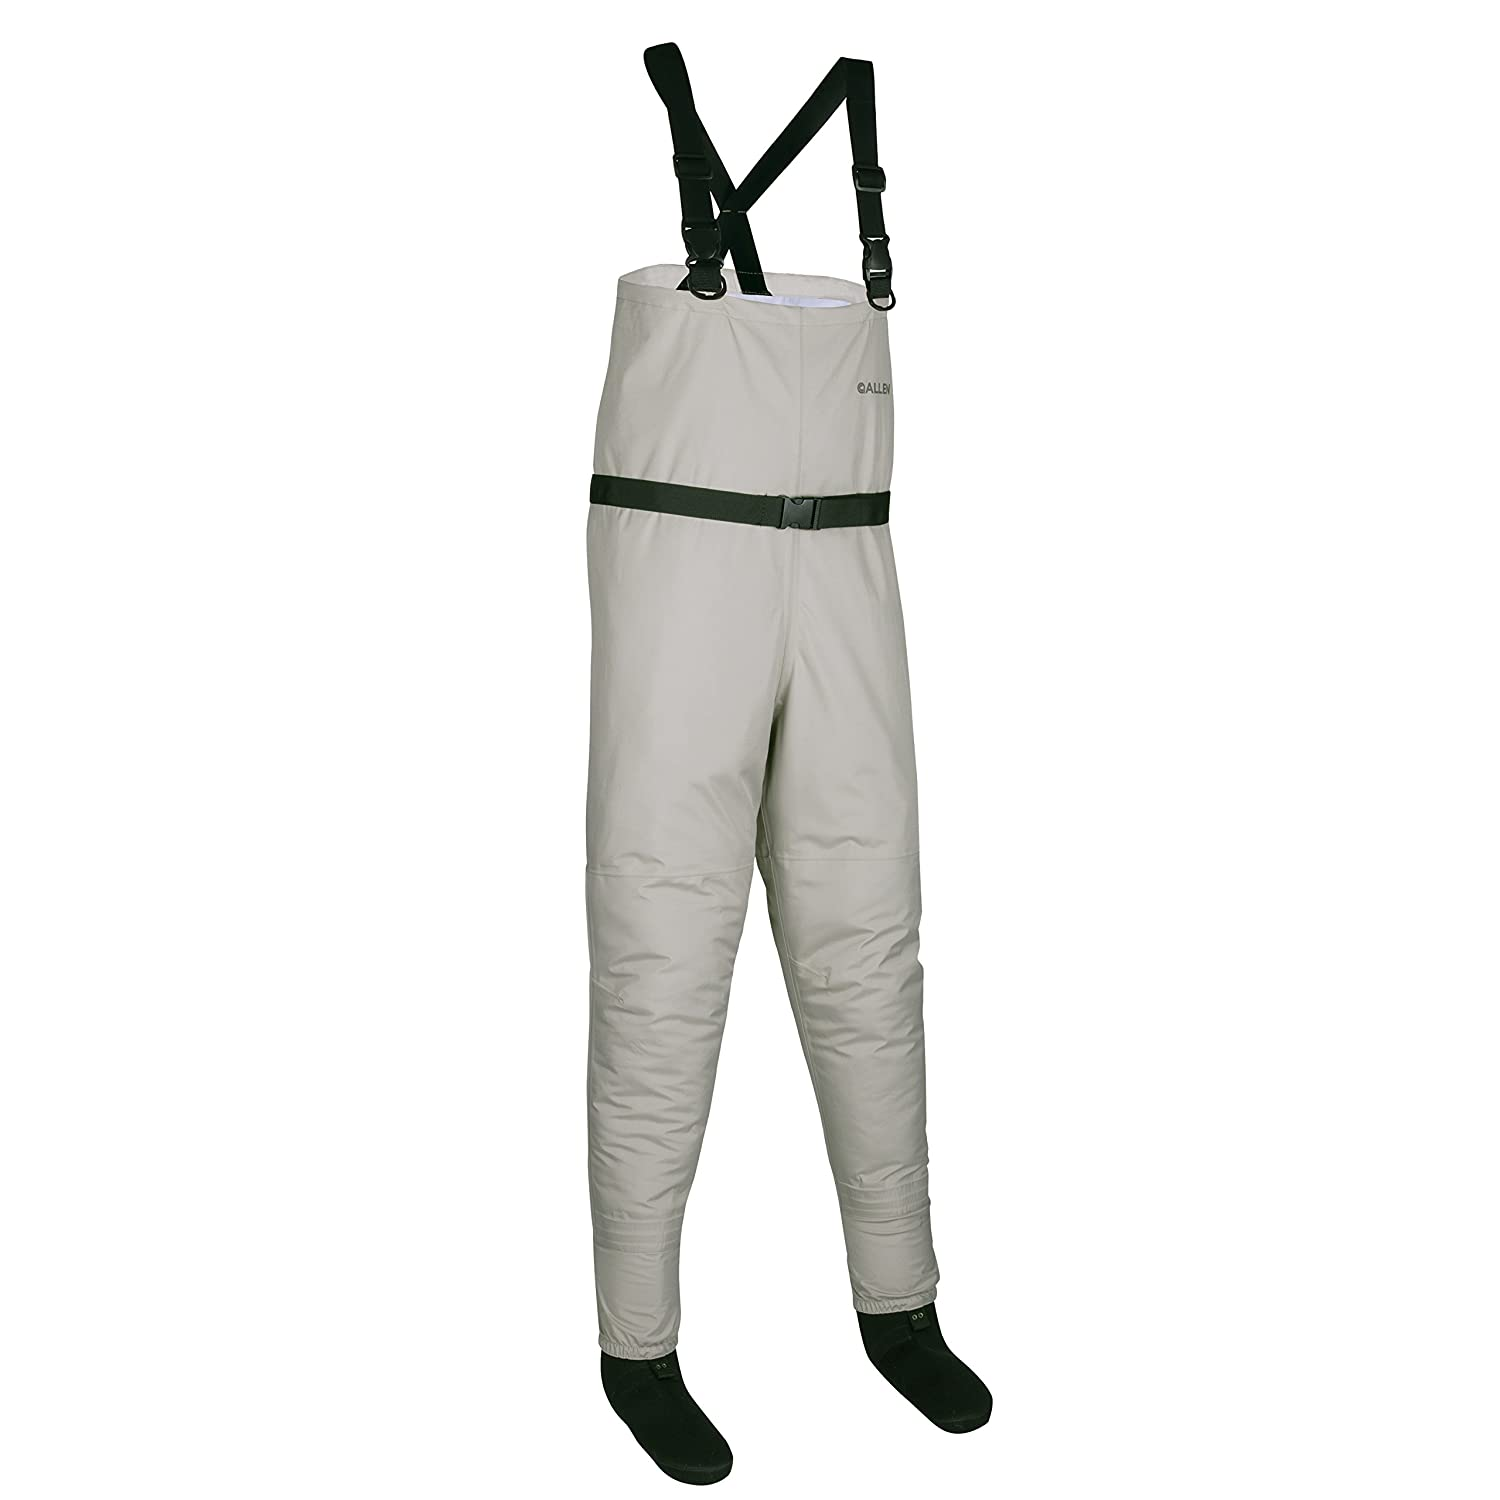 Image of Fishing Boots & Waders Allen Antero Breathable Stockingfoot Waders